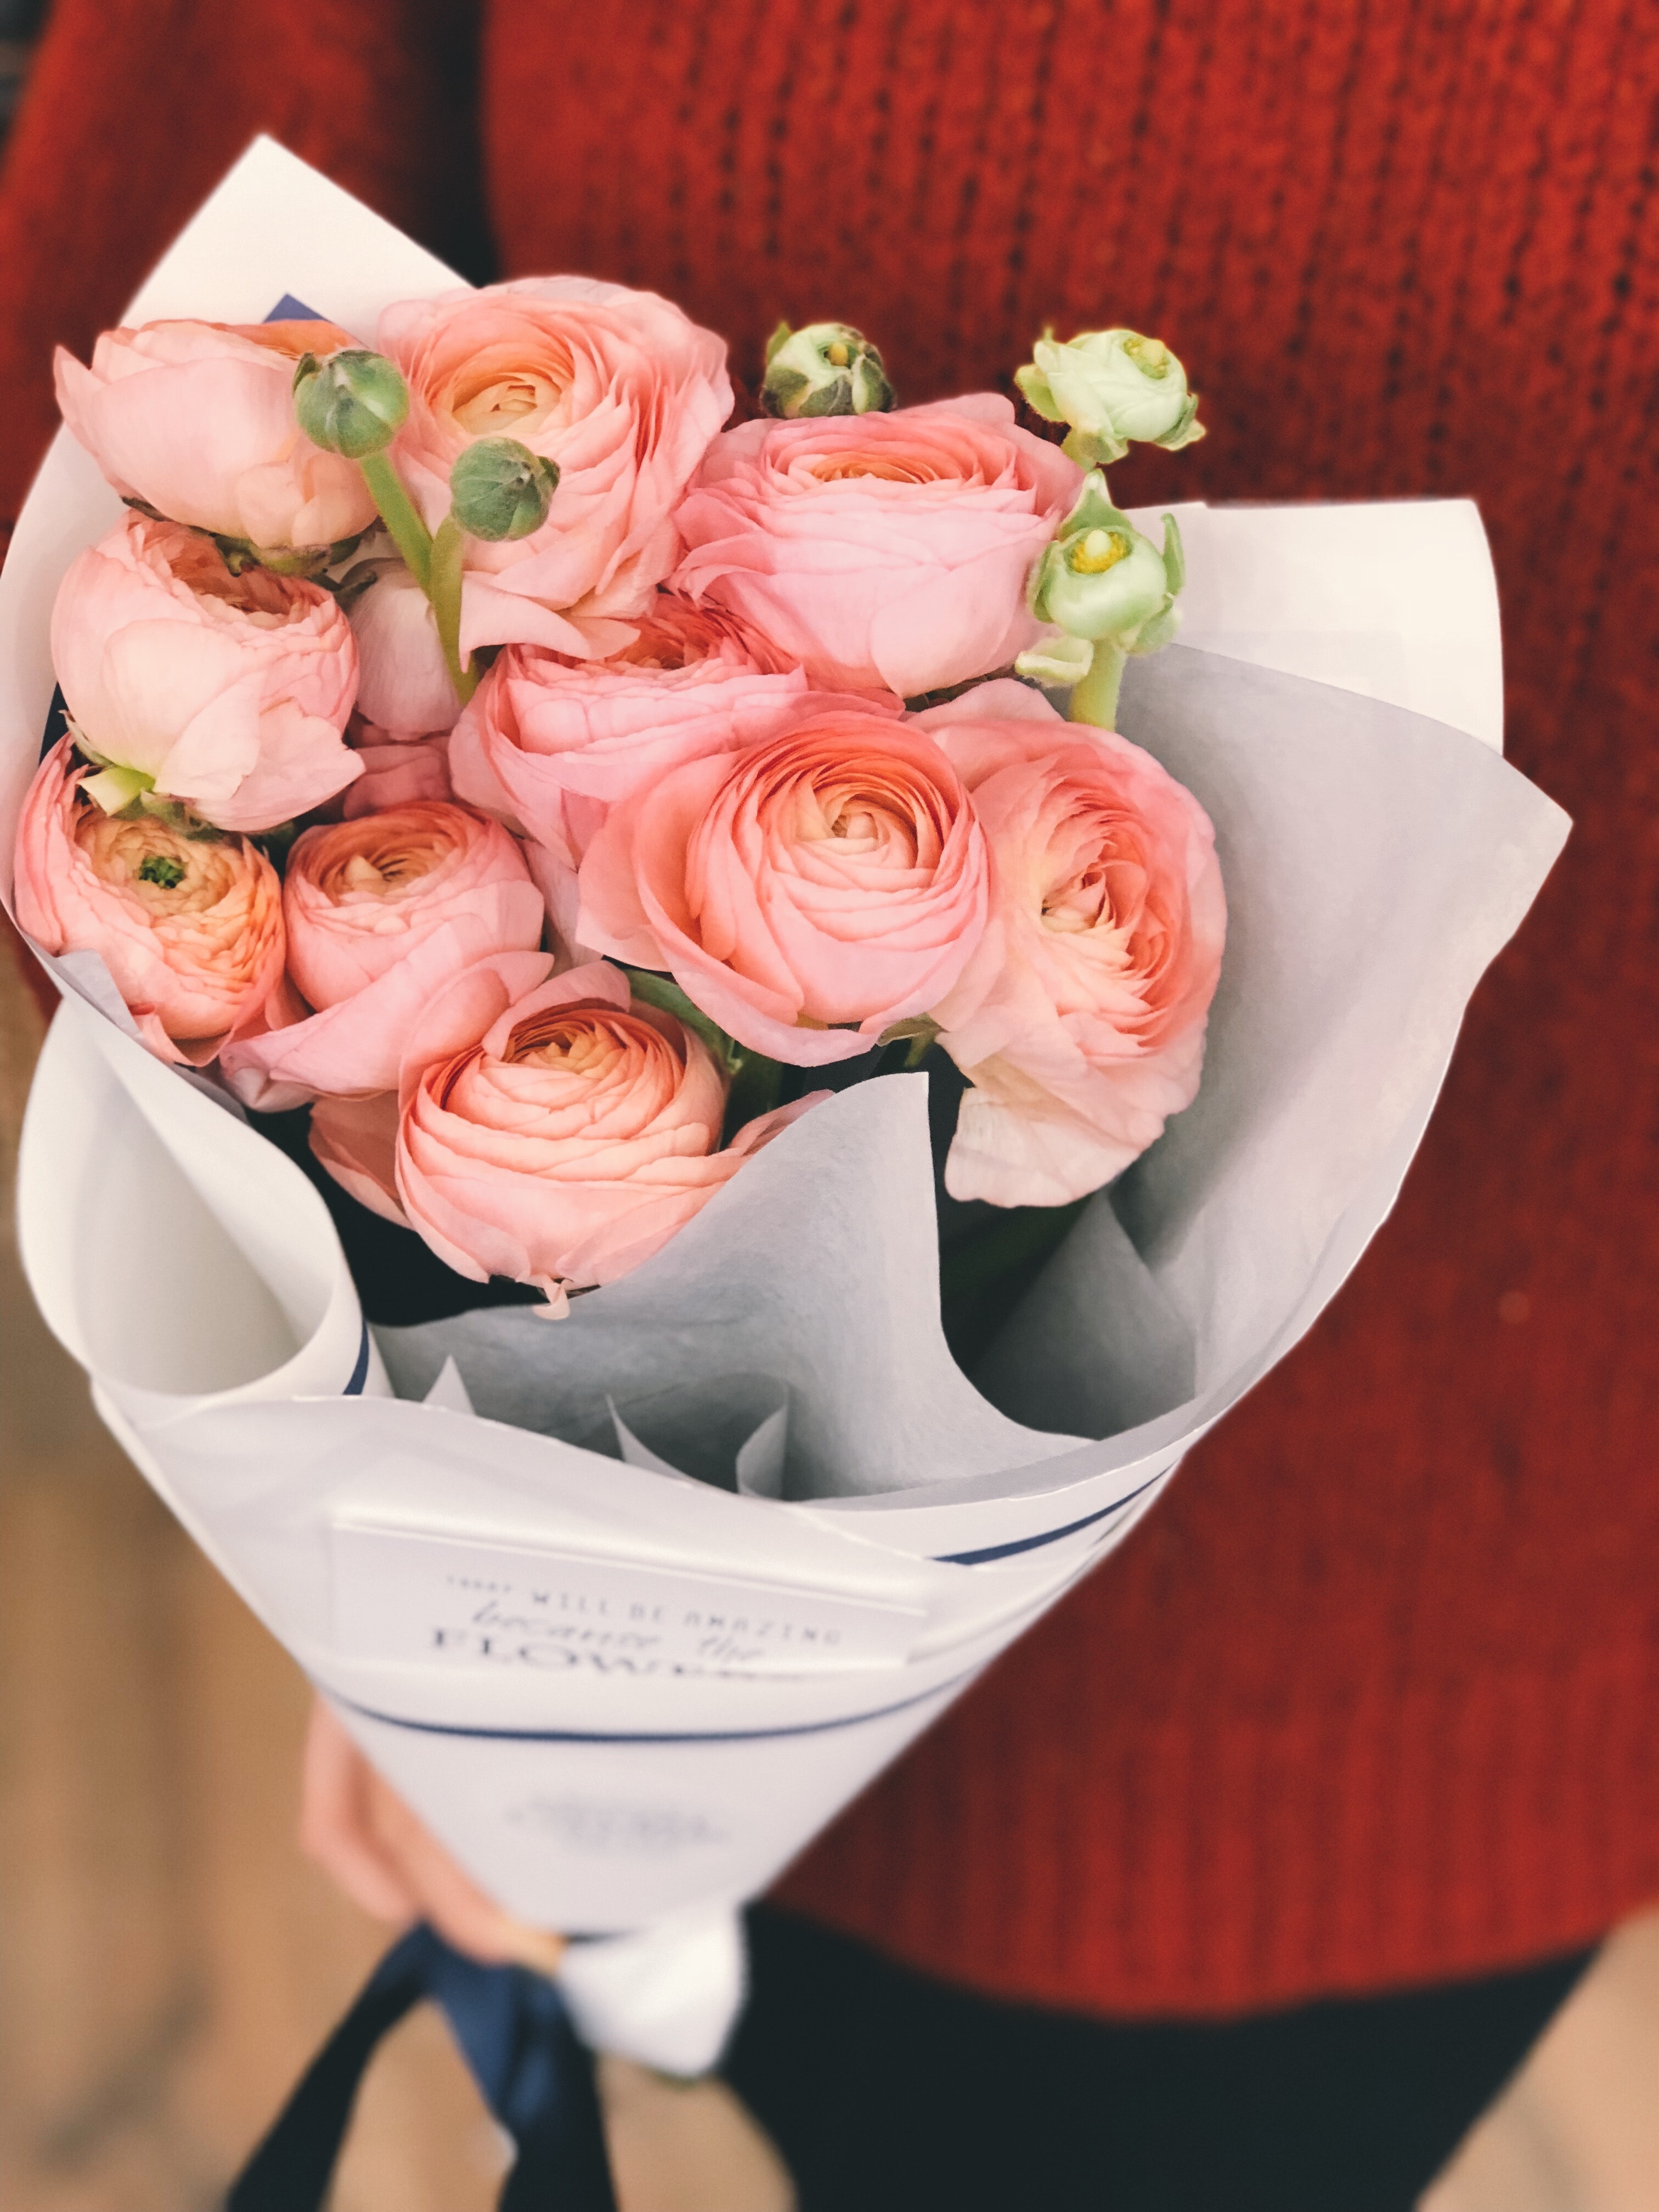 Person wearing red sweater and black pants holding bouquet of pink flowers photo